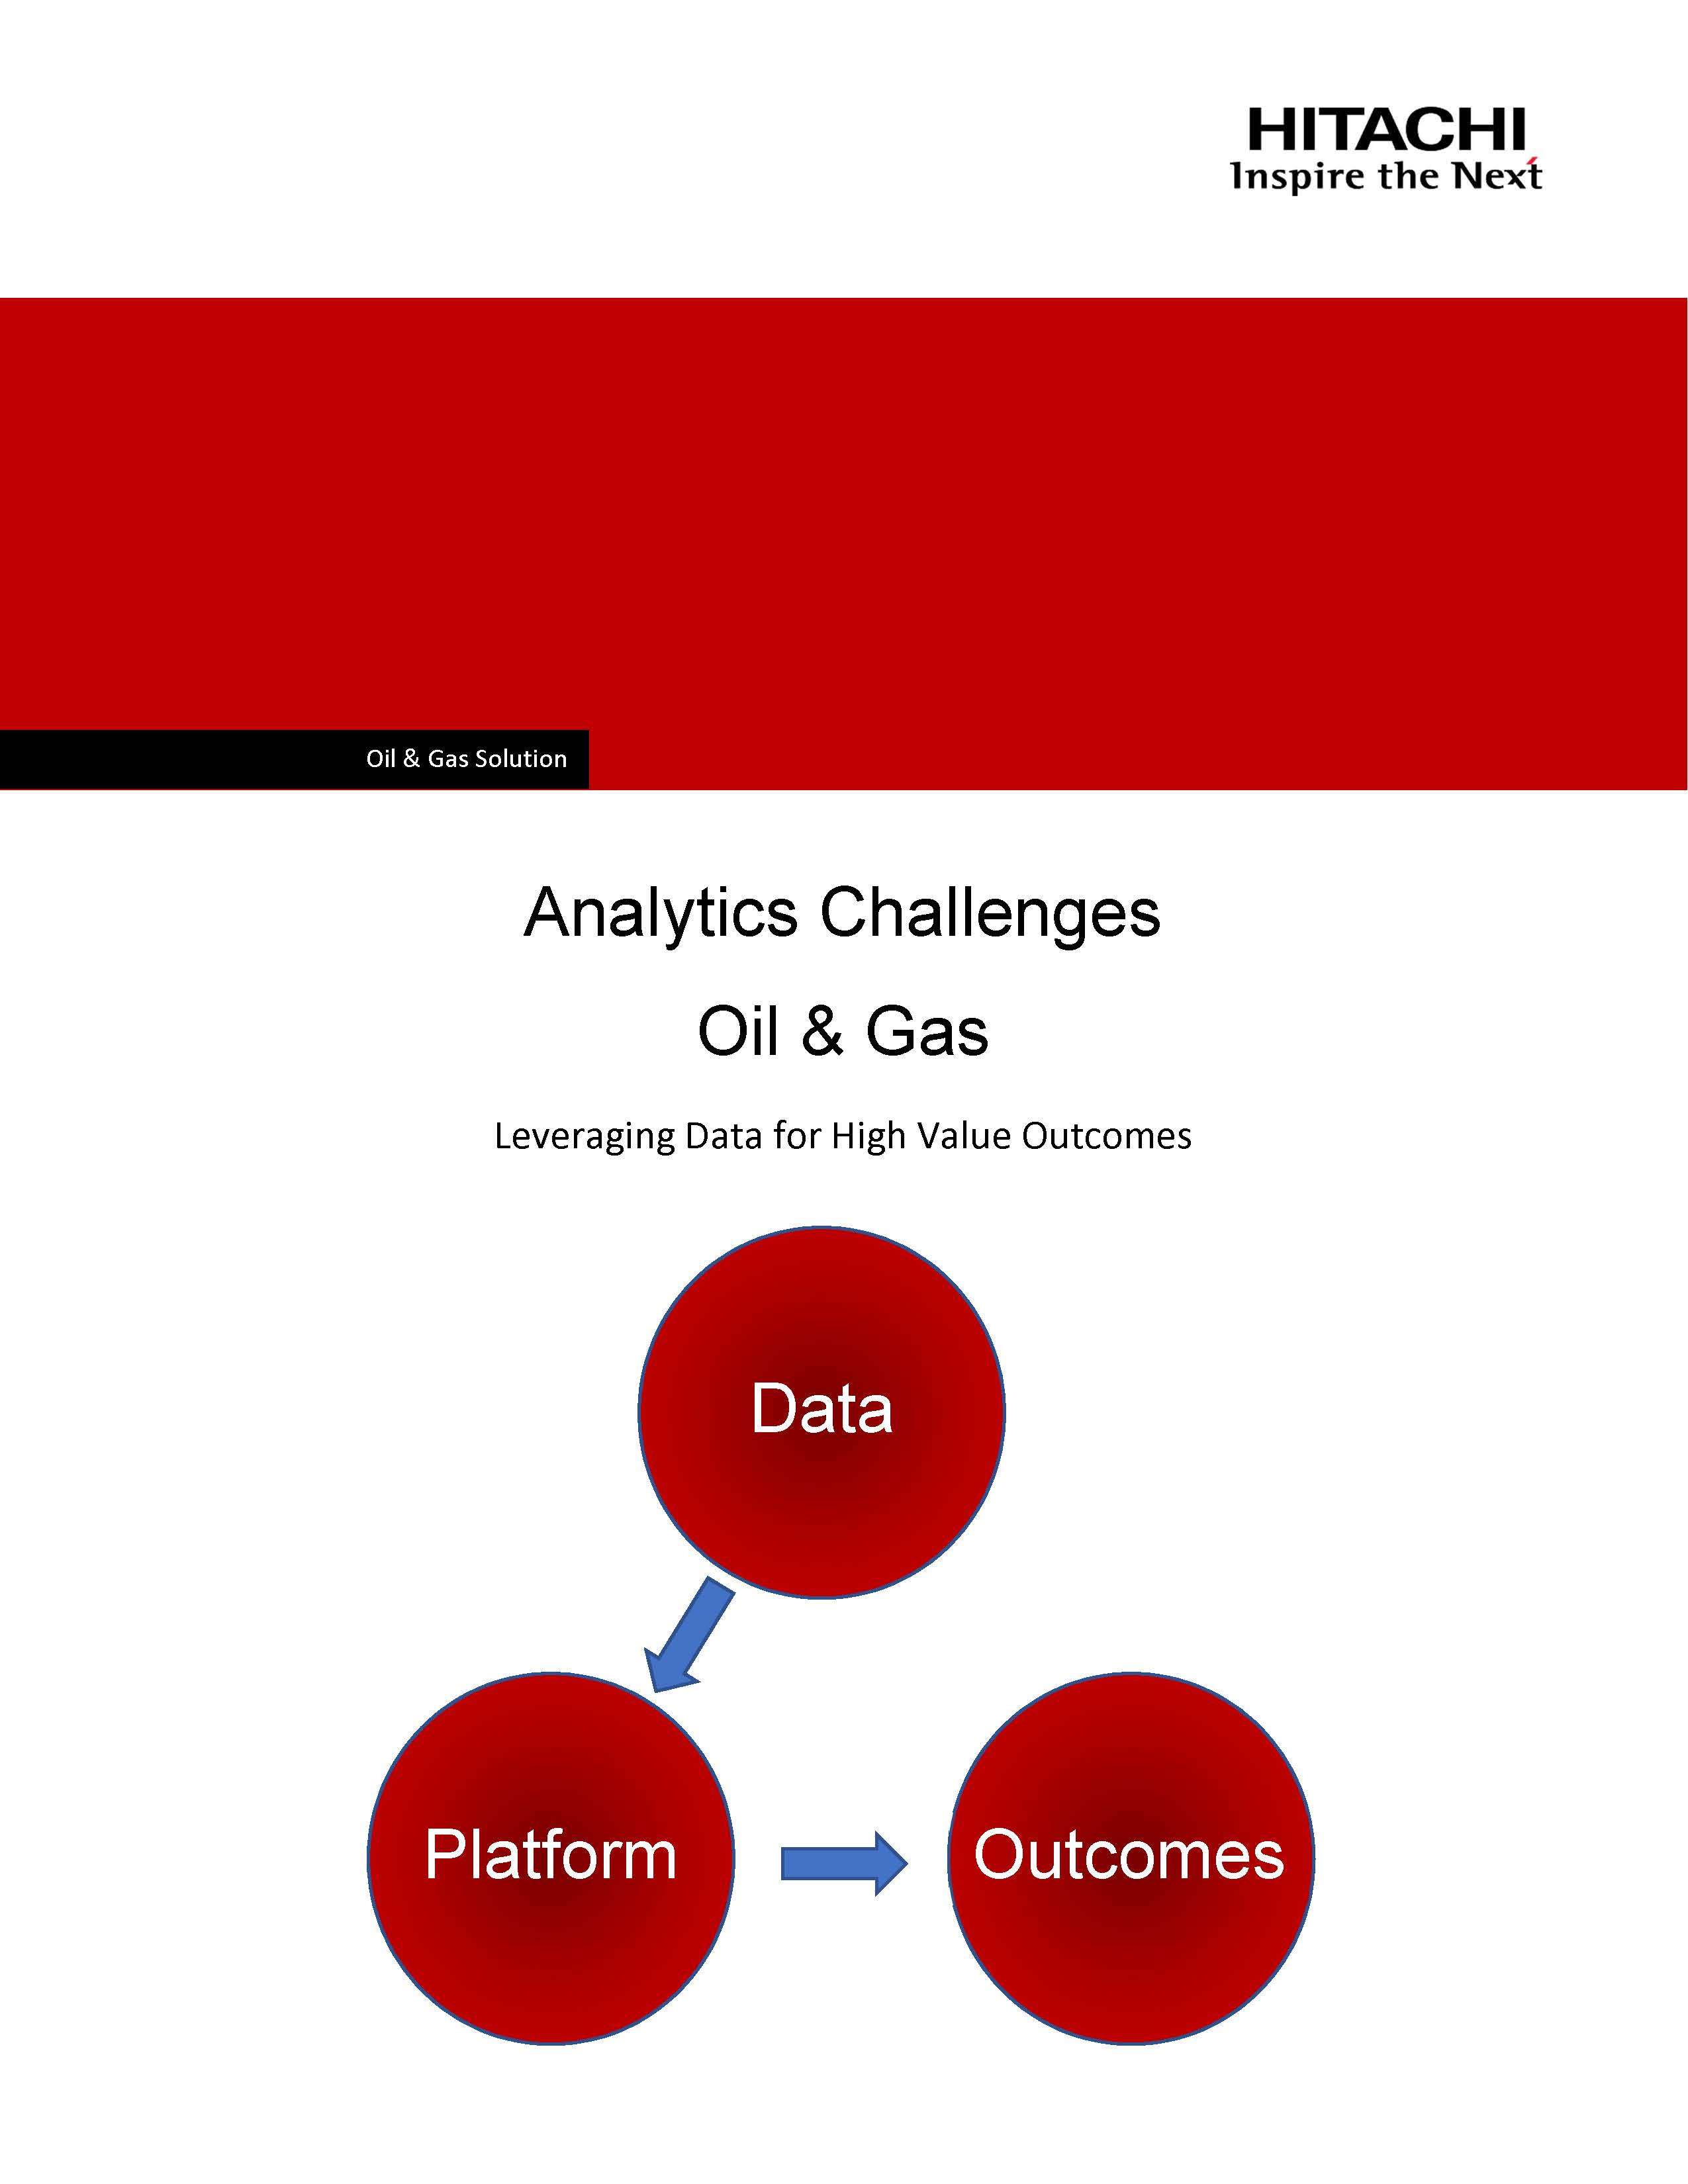 Analytics Challenges in Oil & Gas: Leveraging Data for High Value Outcomes